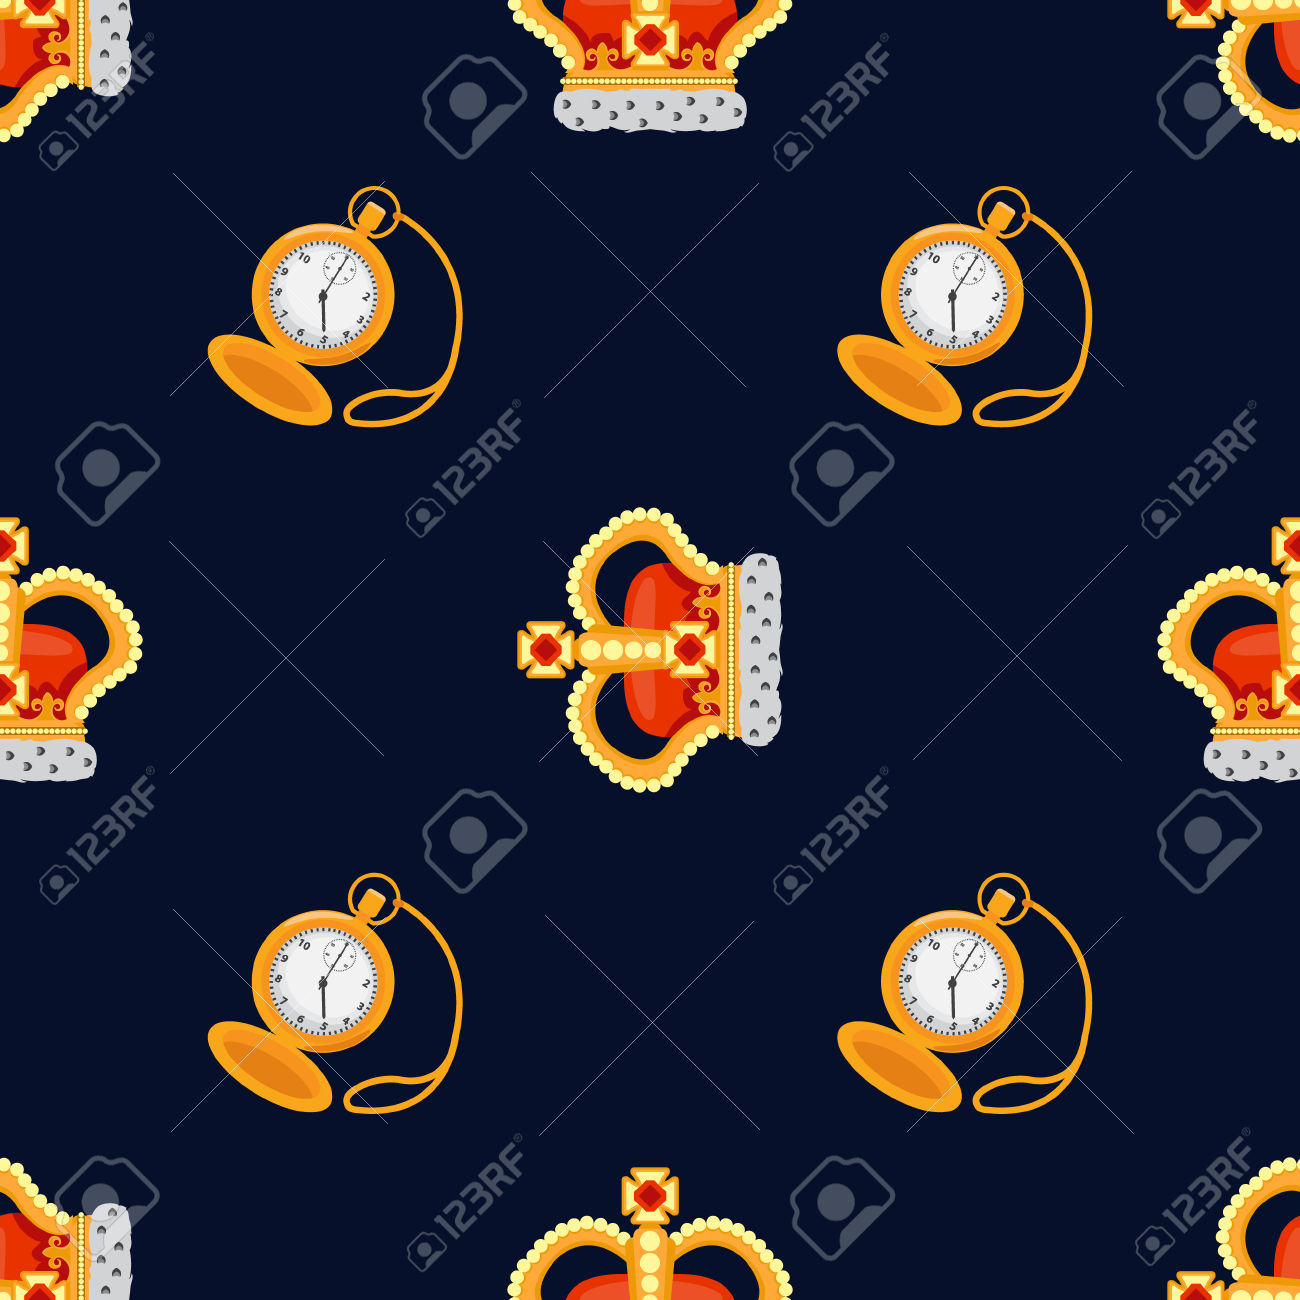 Seamless Pattern With Crown Monarch And Pocket Watch To The Noble.